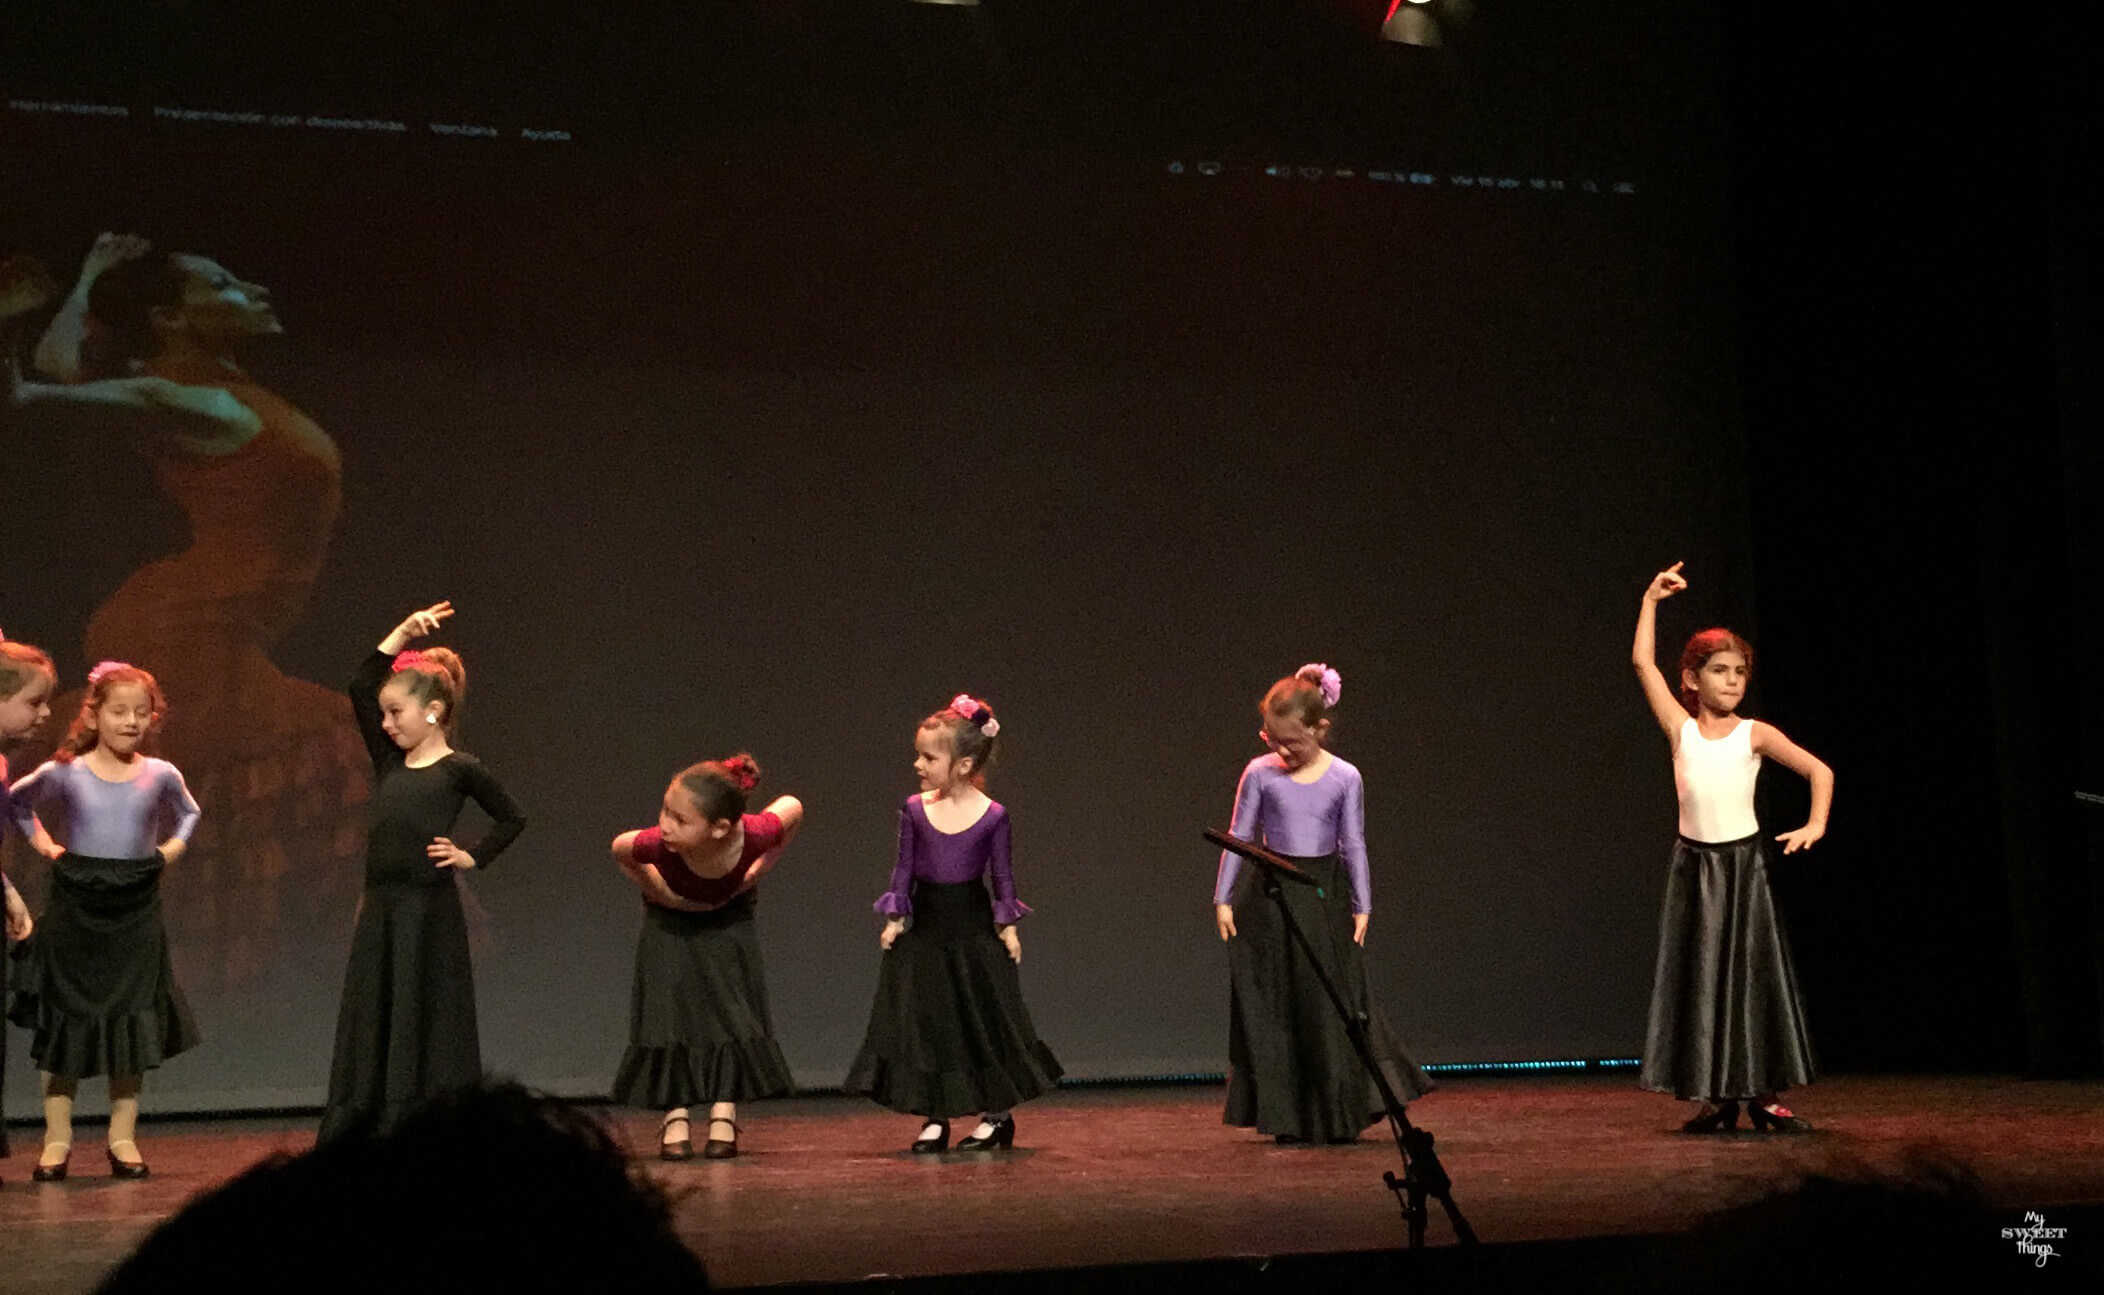 What to do in summer in Mallorca - Flamenco dancing